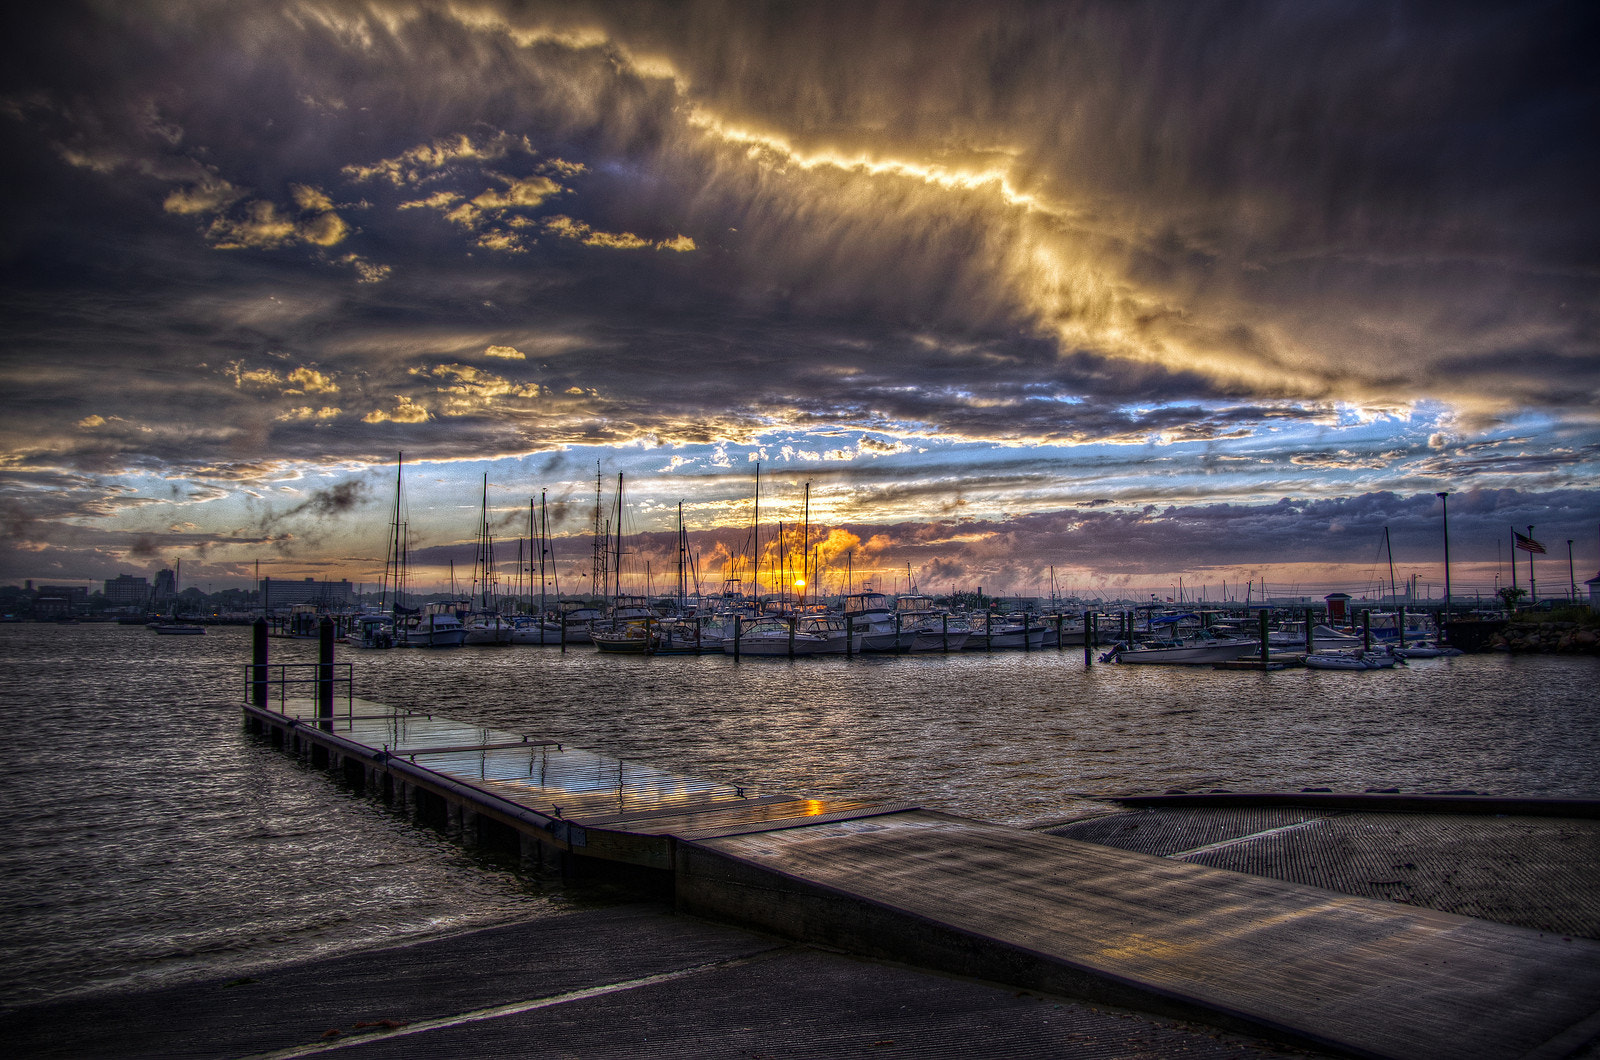 Photograph Sunset After the Storm by Frank Grace on 500px